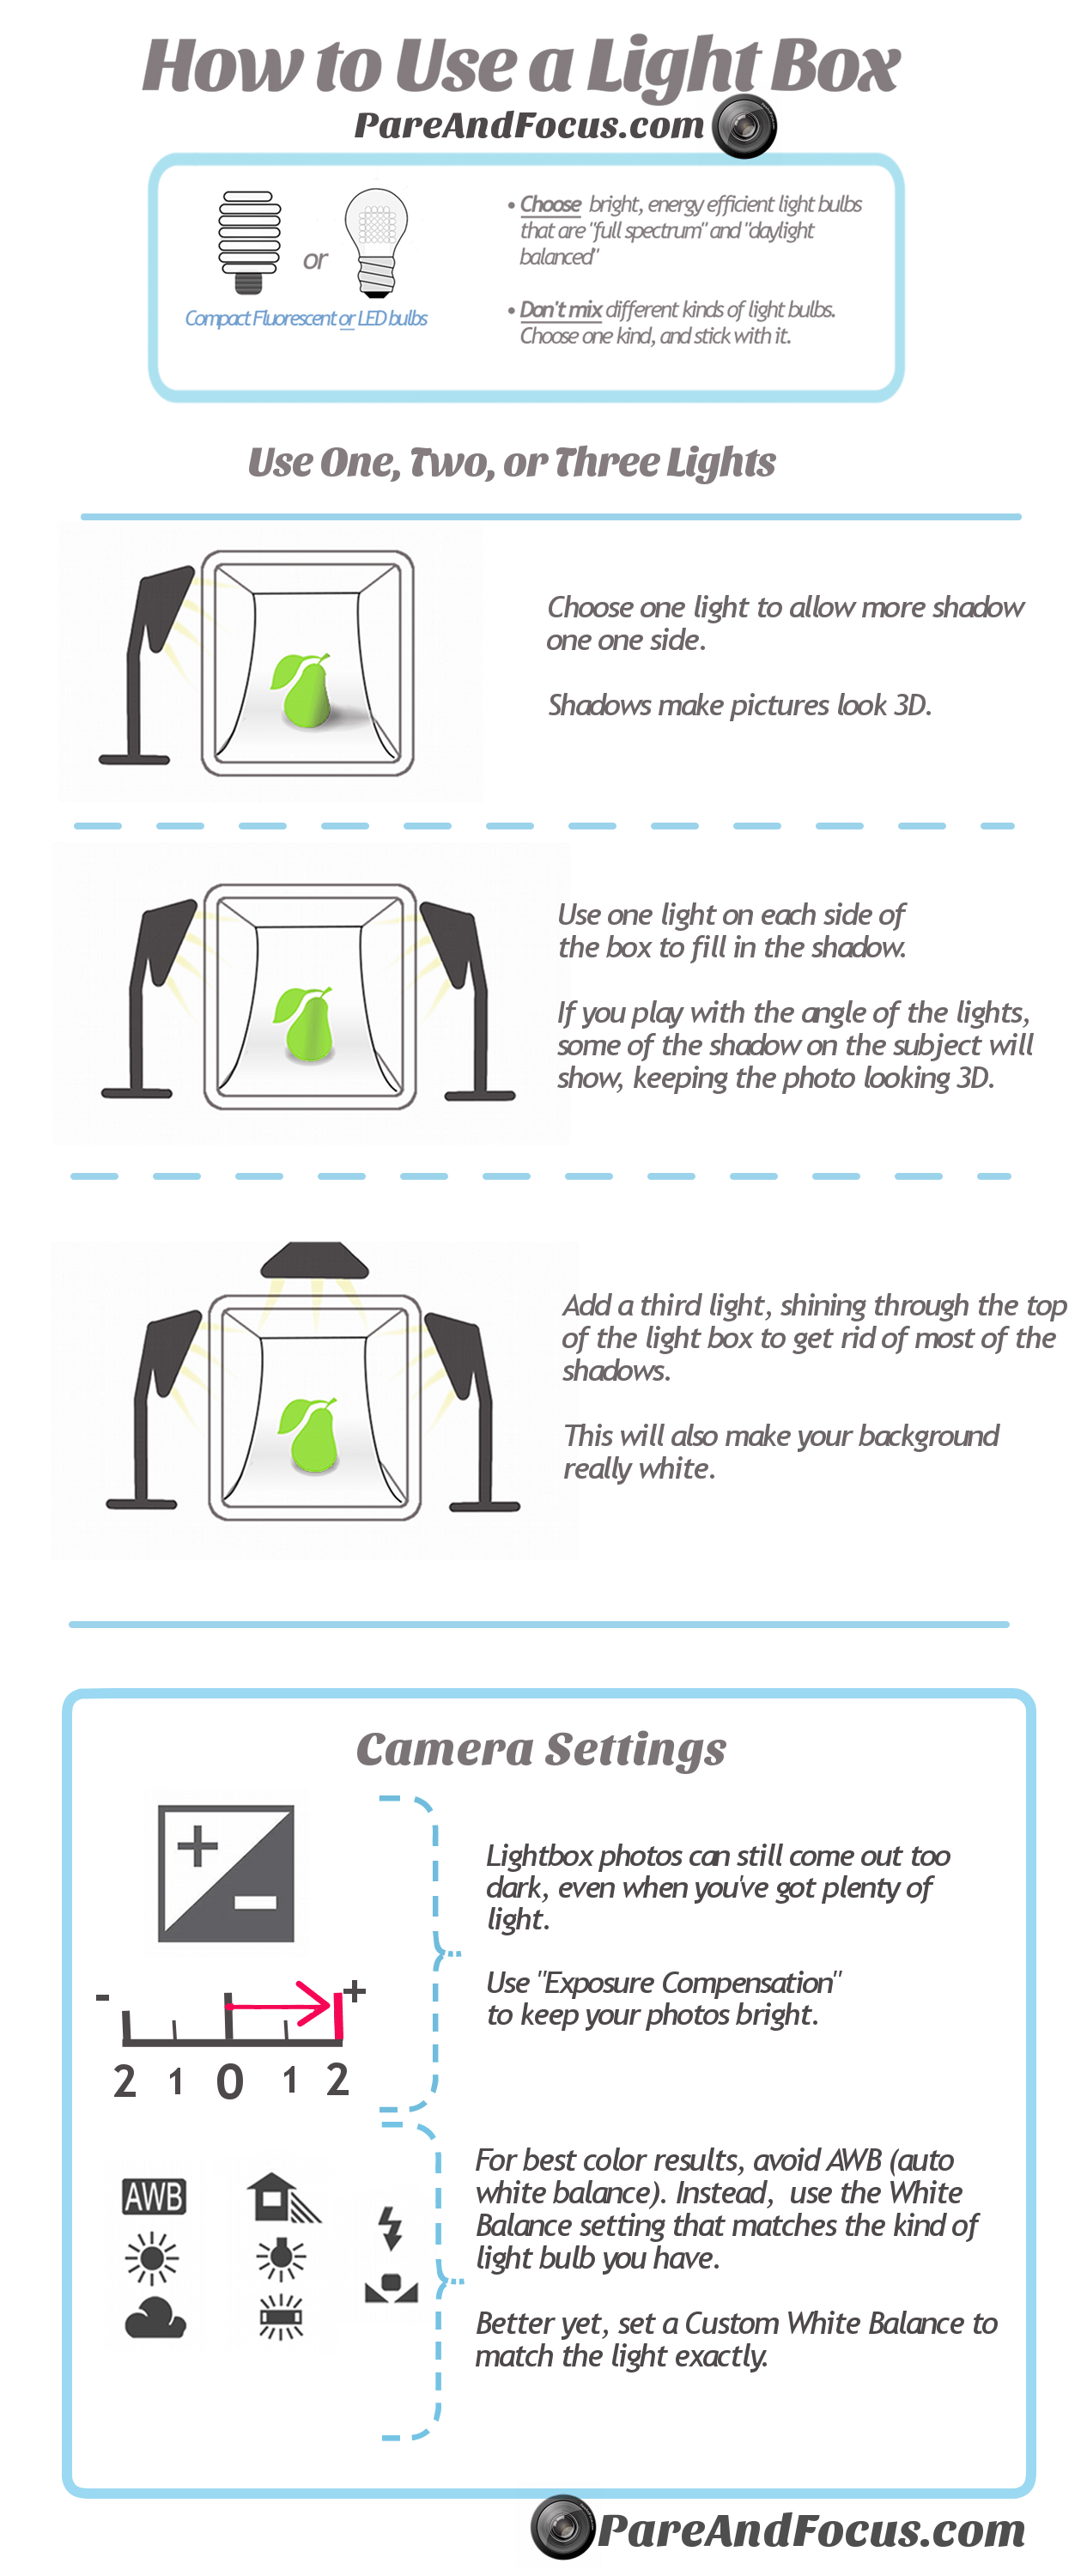 how-to-use-a-light-box_504397b1a6a09